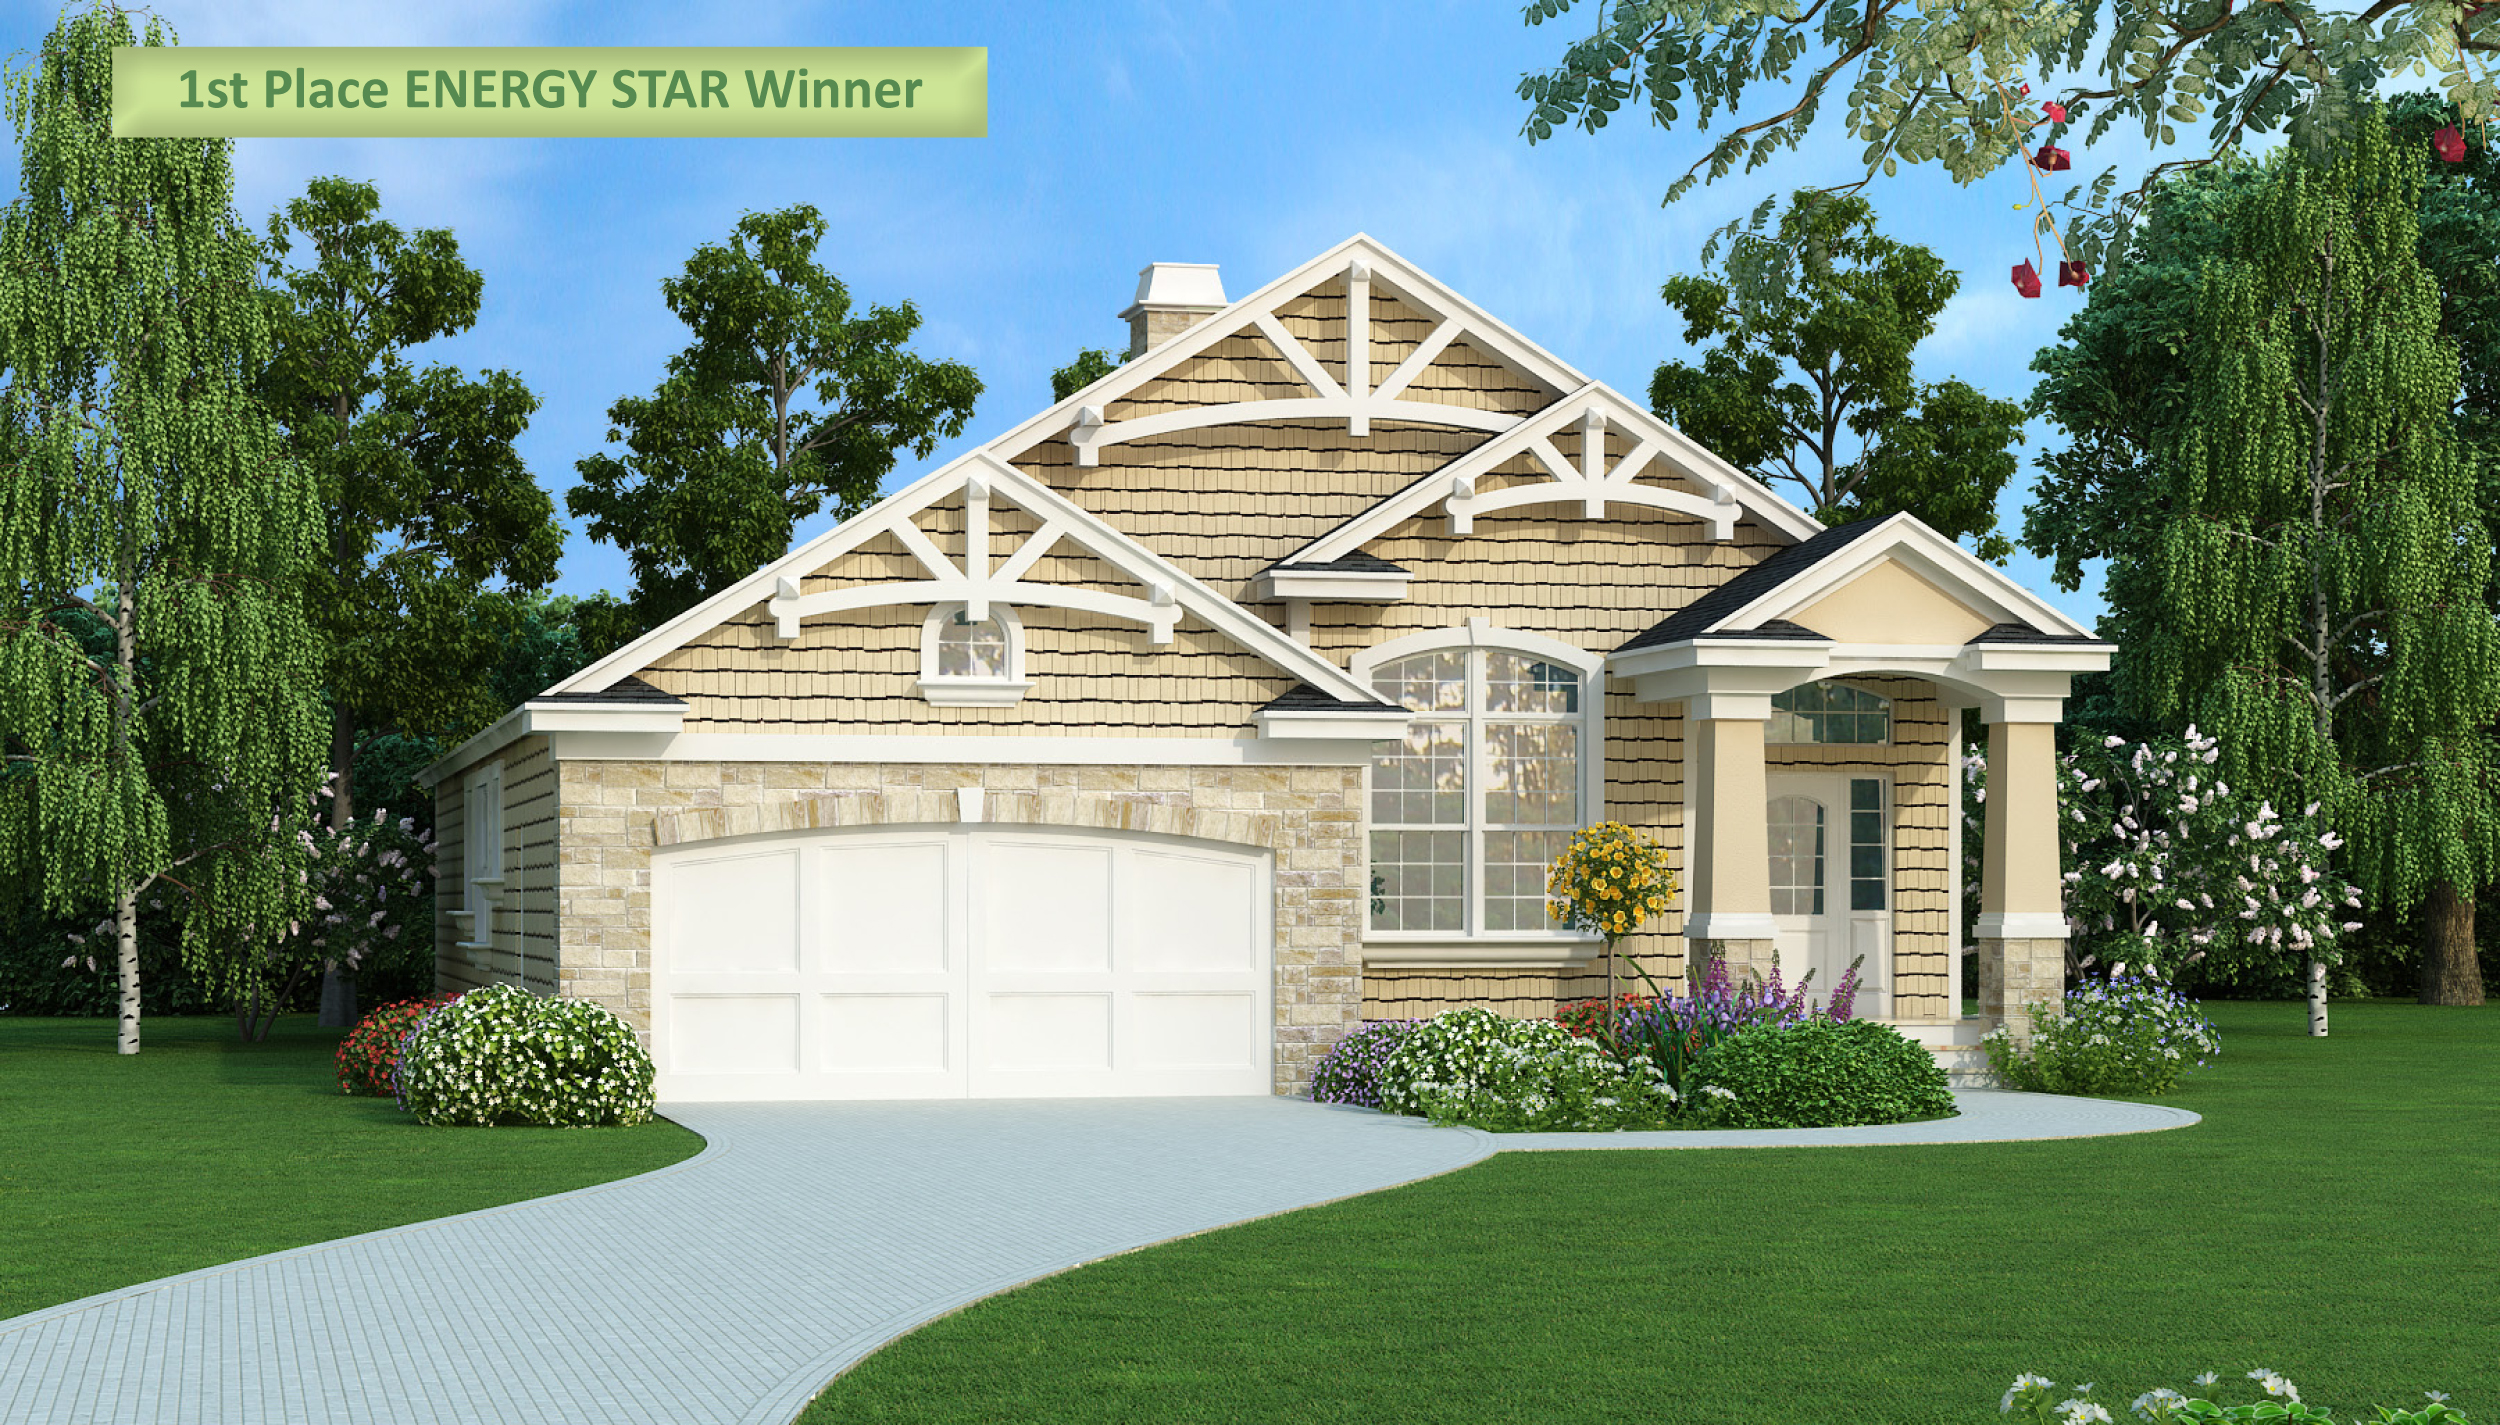 green house plans, ENERGY STAR homes, sustainable house plans